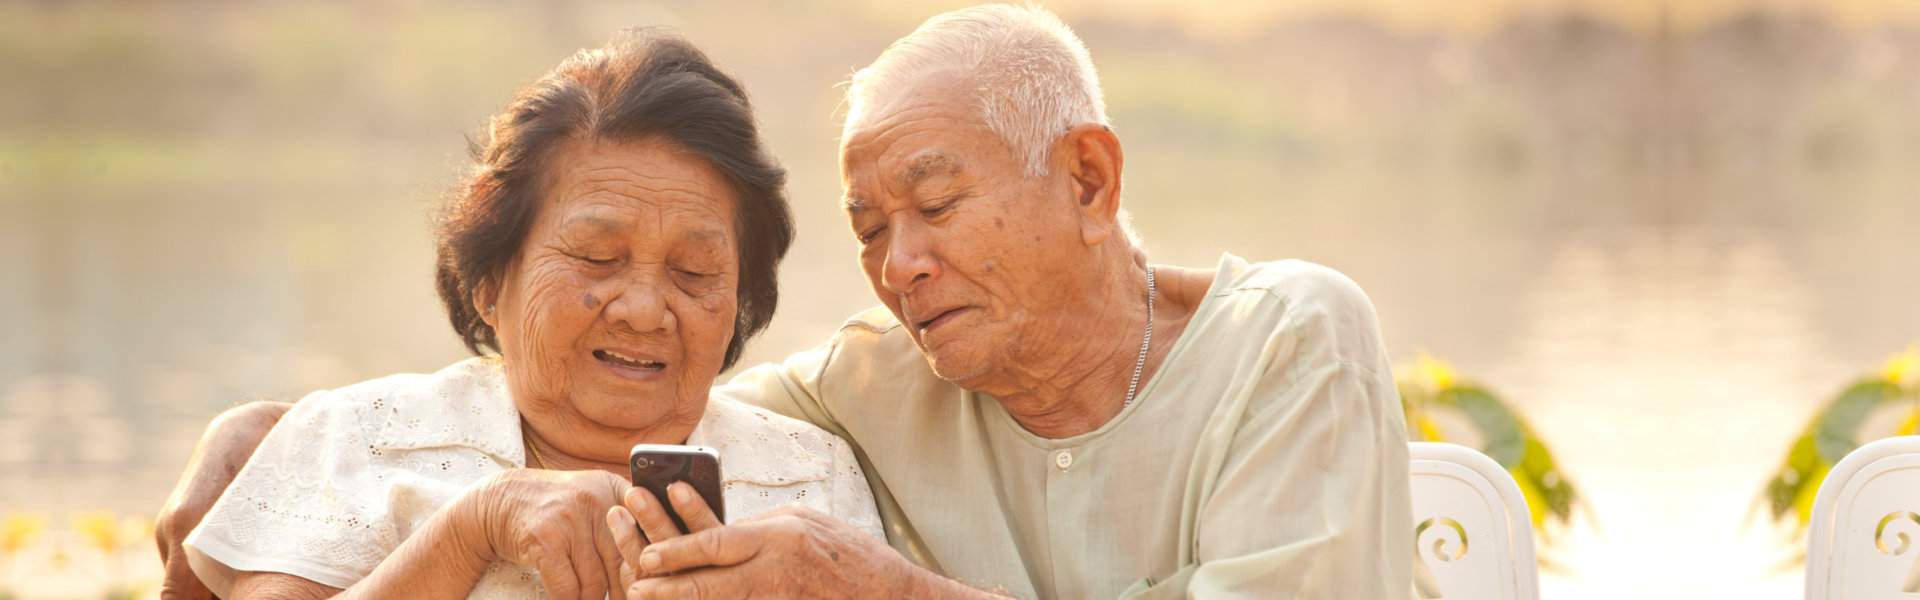 old woman holding a smartphone together with an old man